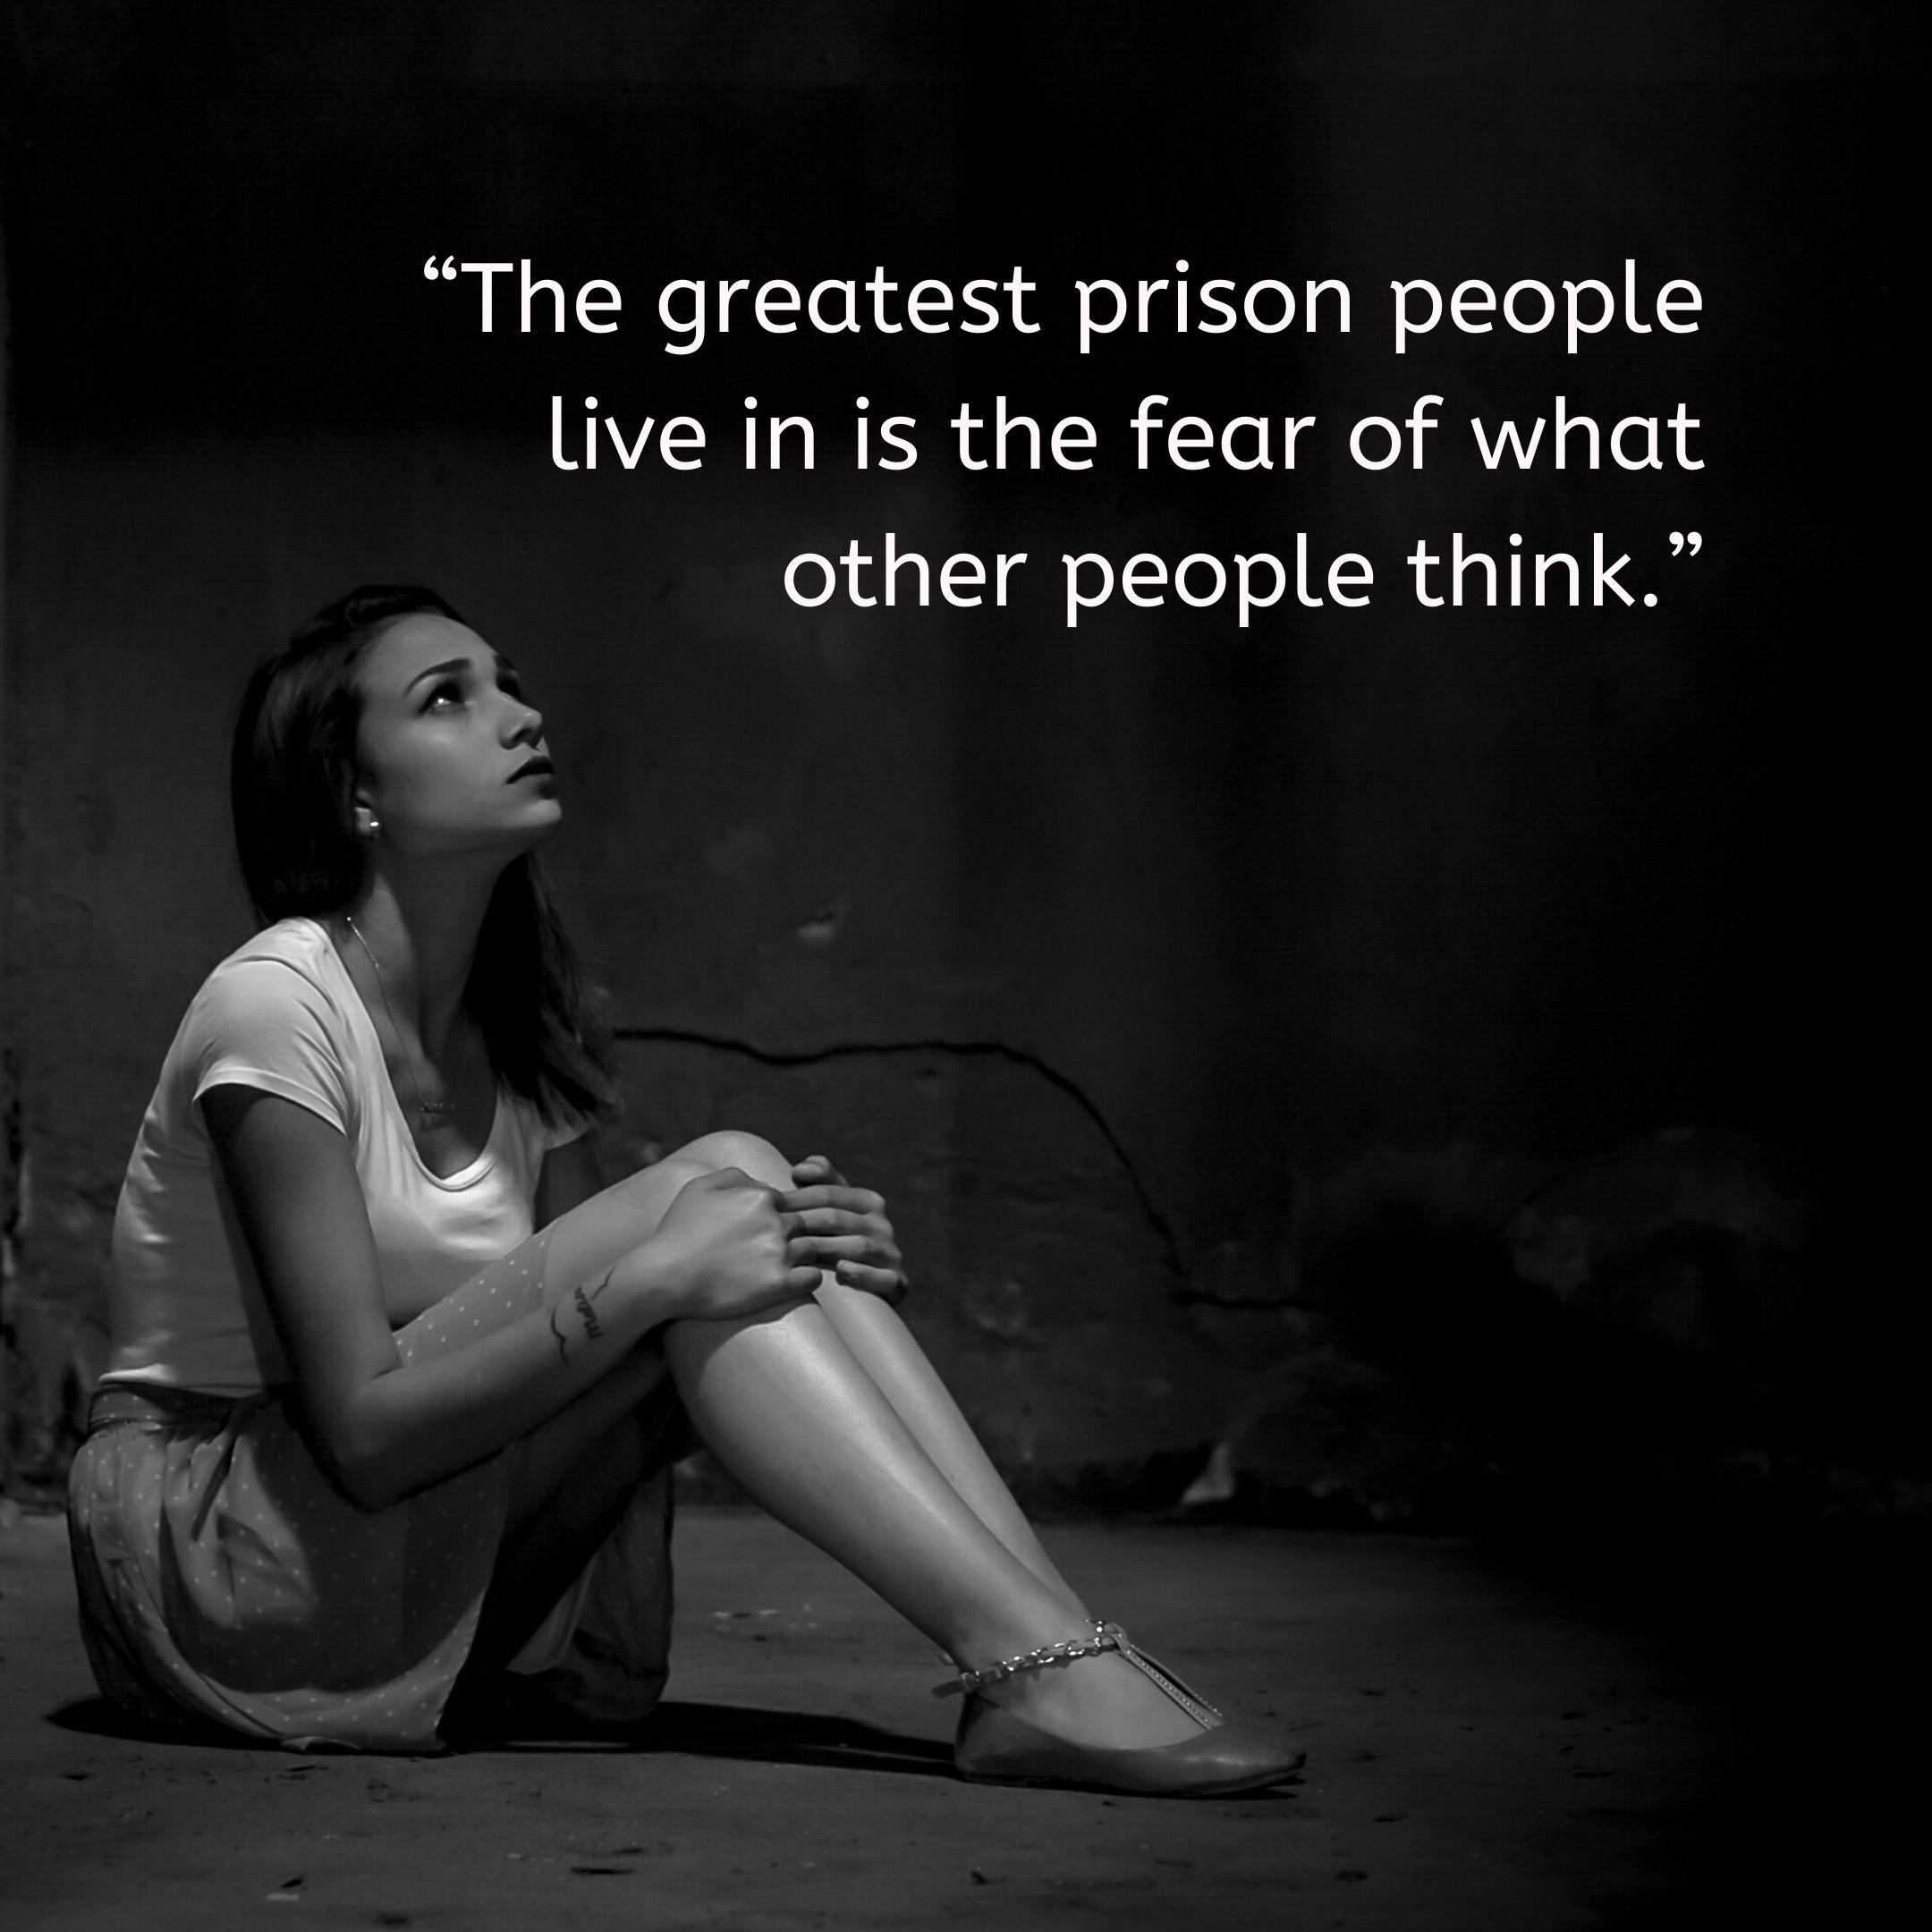 [image] stop caring about what people think!